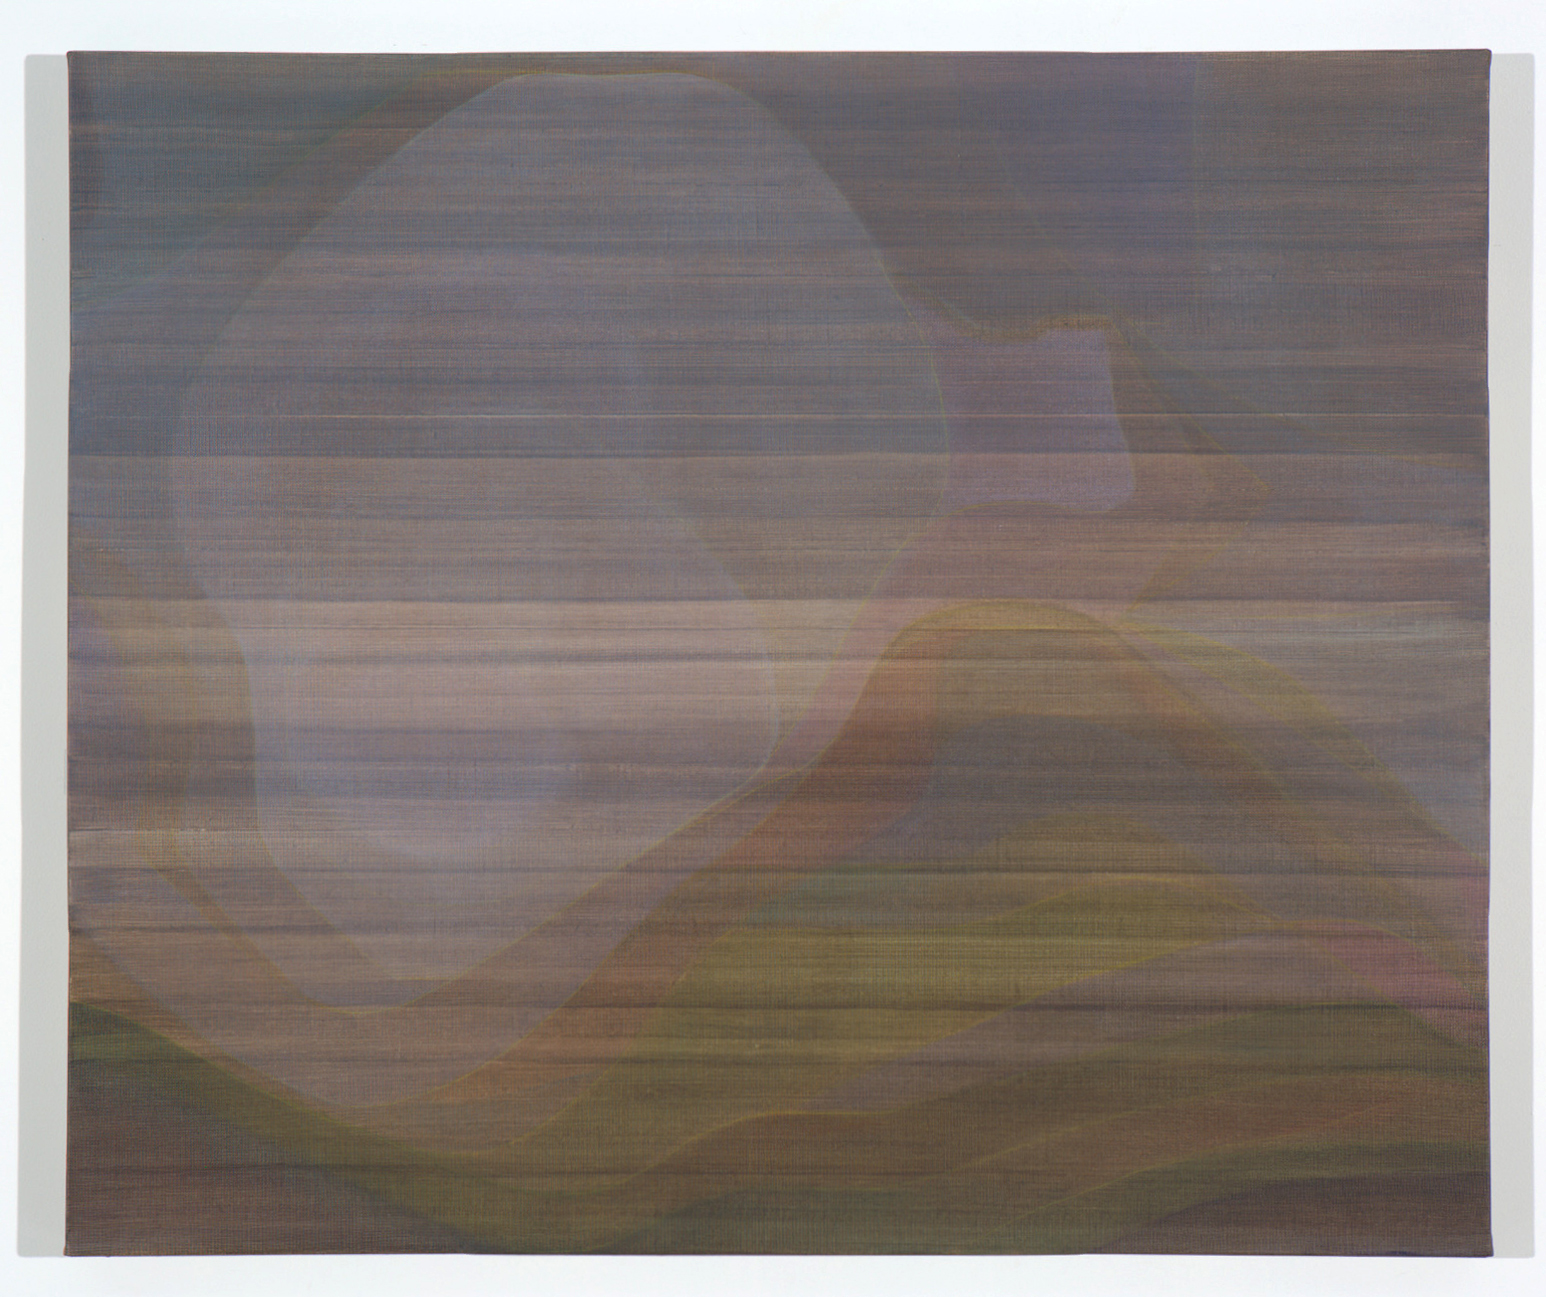 JOHN YOUNG   None Living Knows #1  2017 oil on canvas 86.5 x 102.5 cm